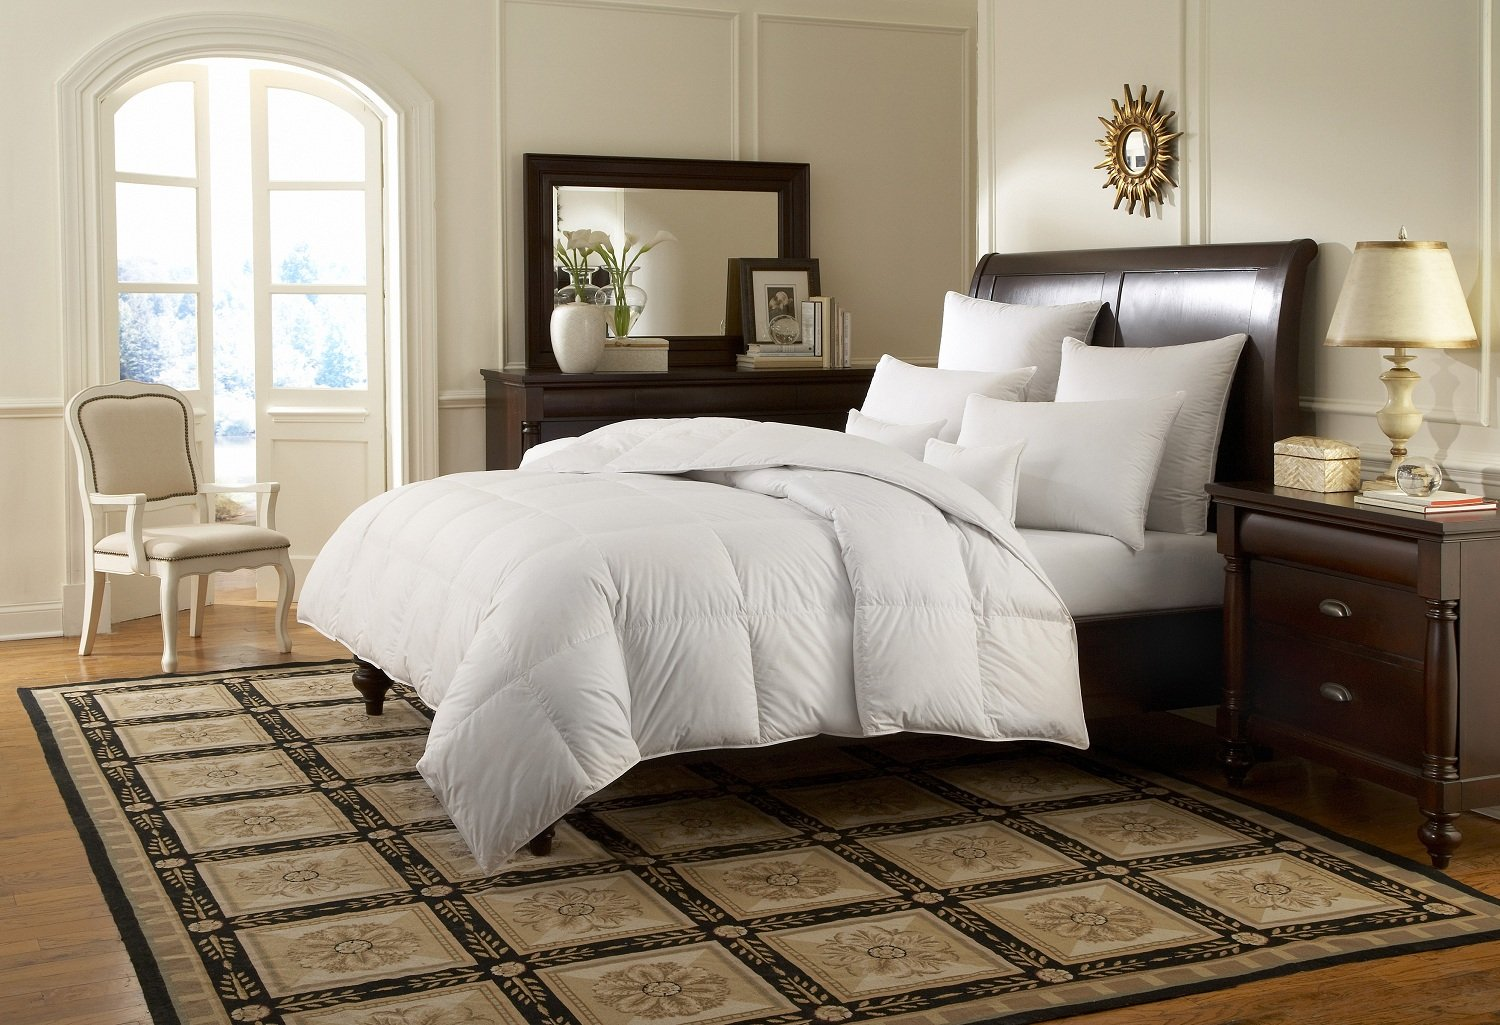 Downright Logana 920+ Canadian White Goose Down All Year Weight Comforter enzo logana w14121447907